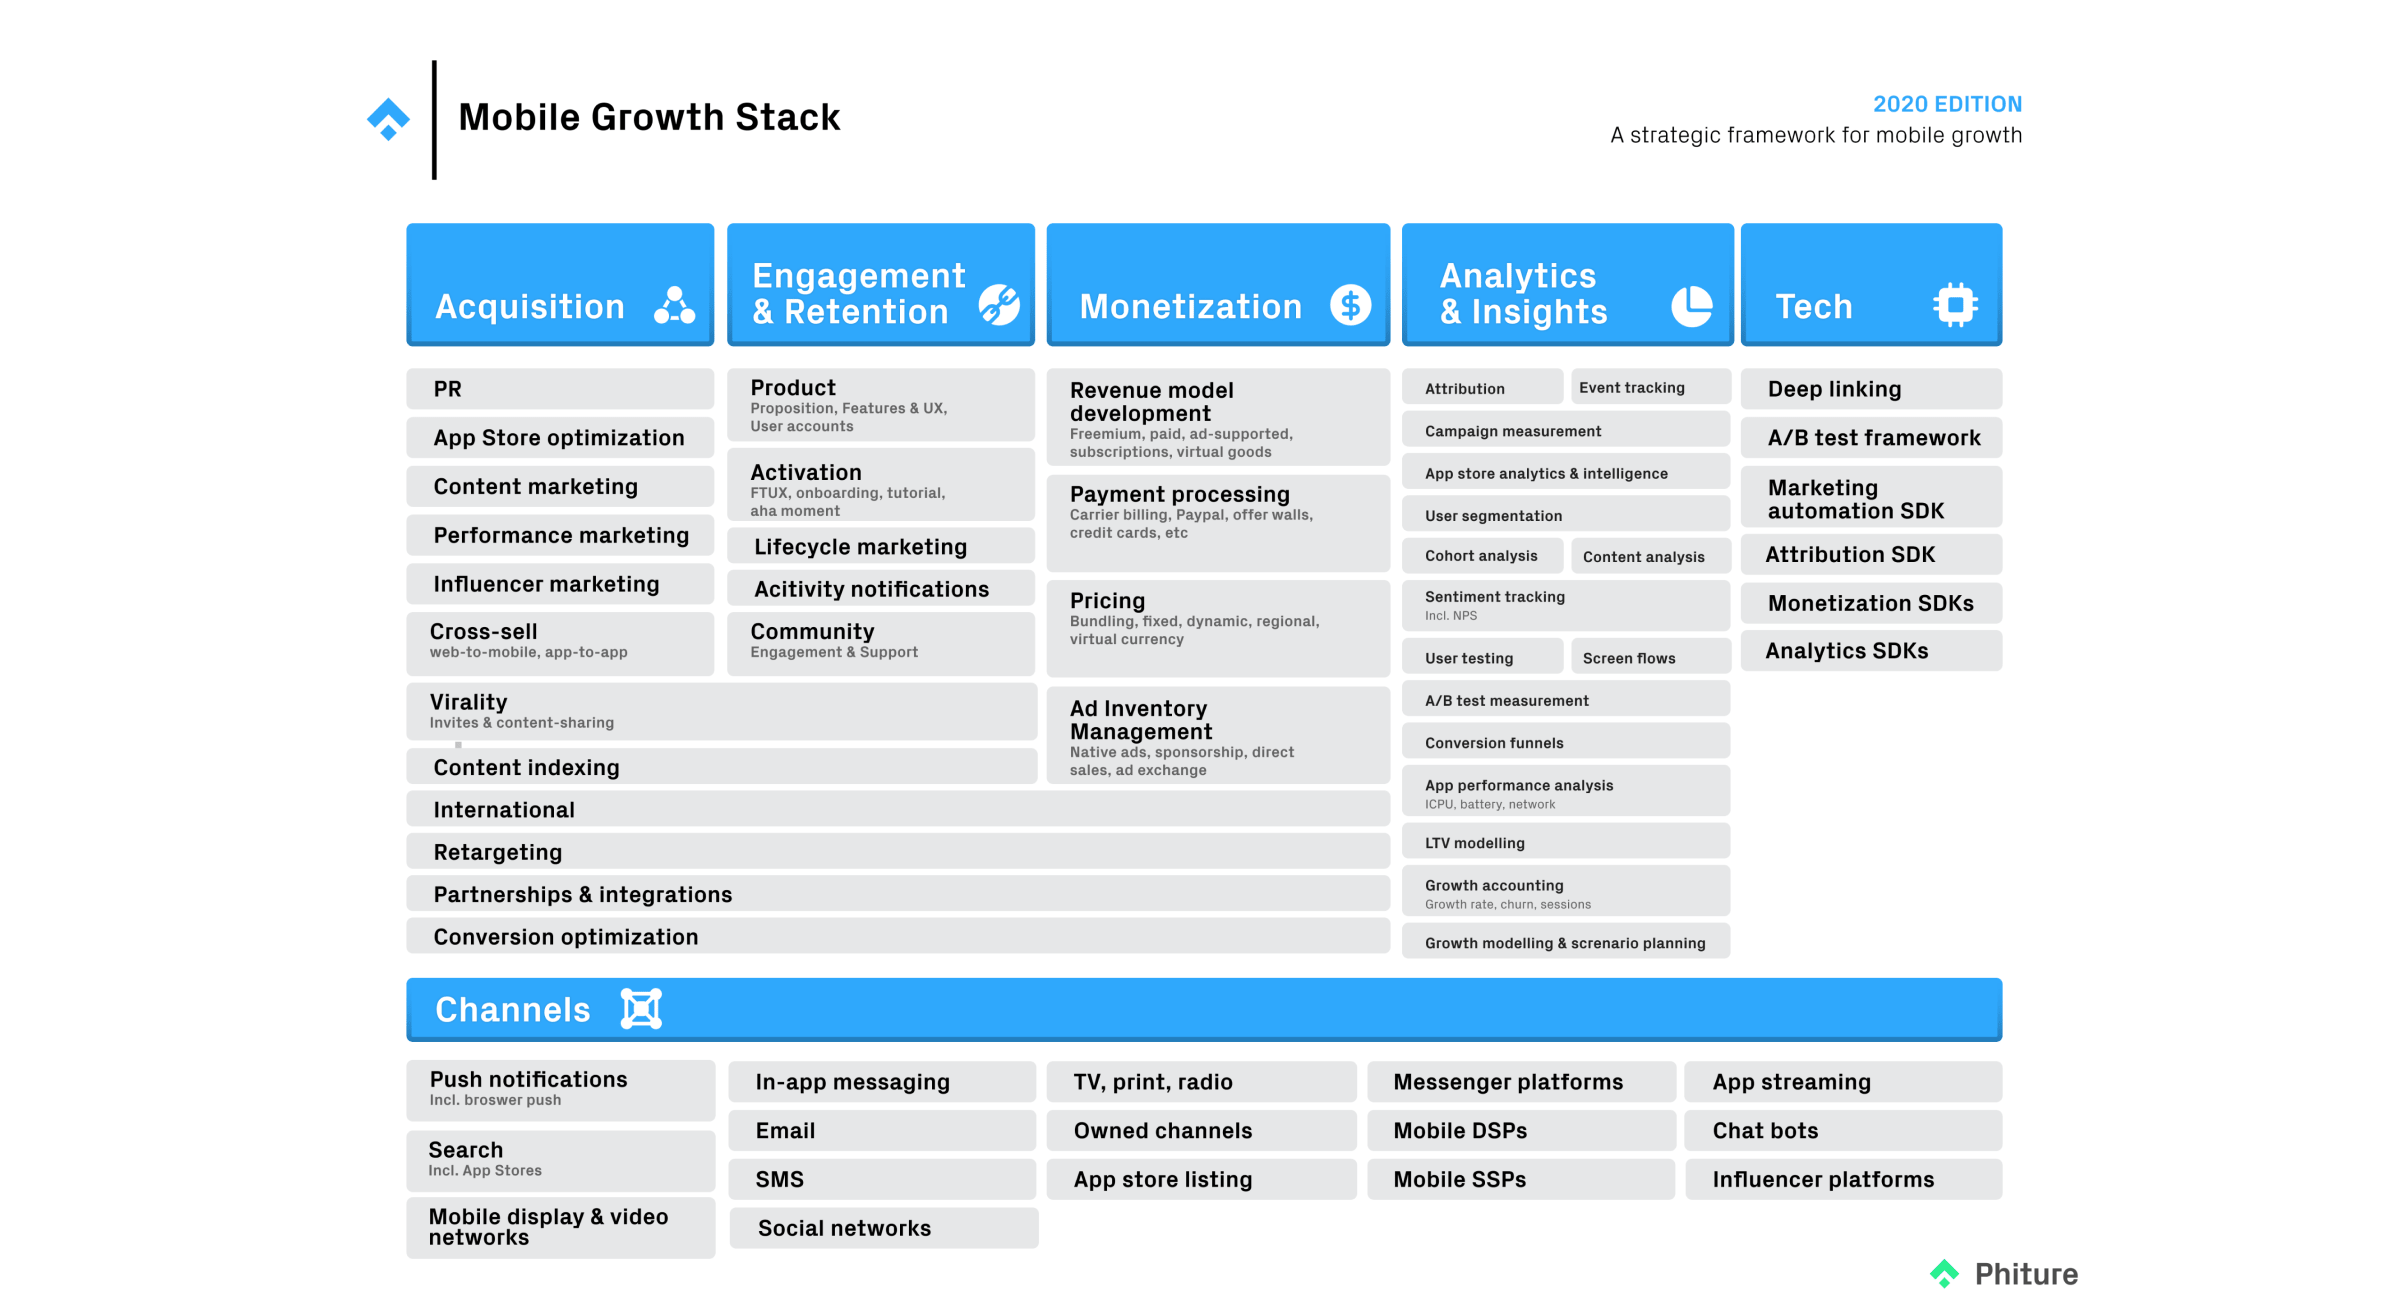 mobile growth stack 2020